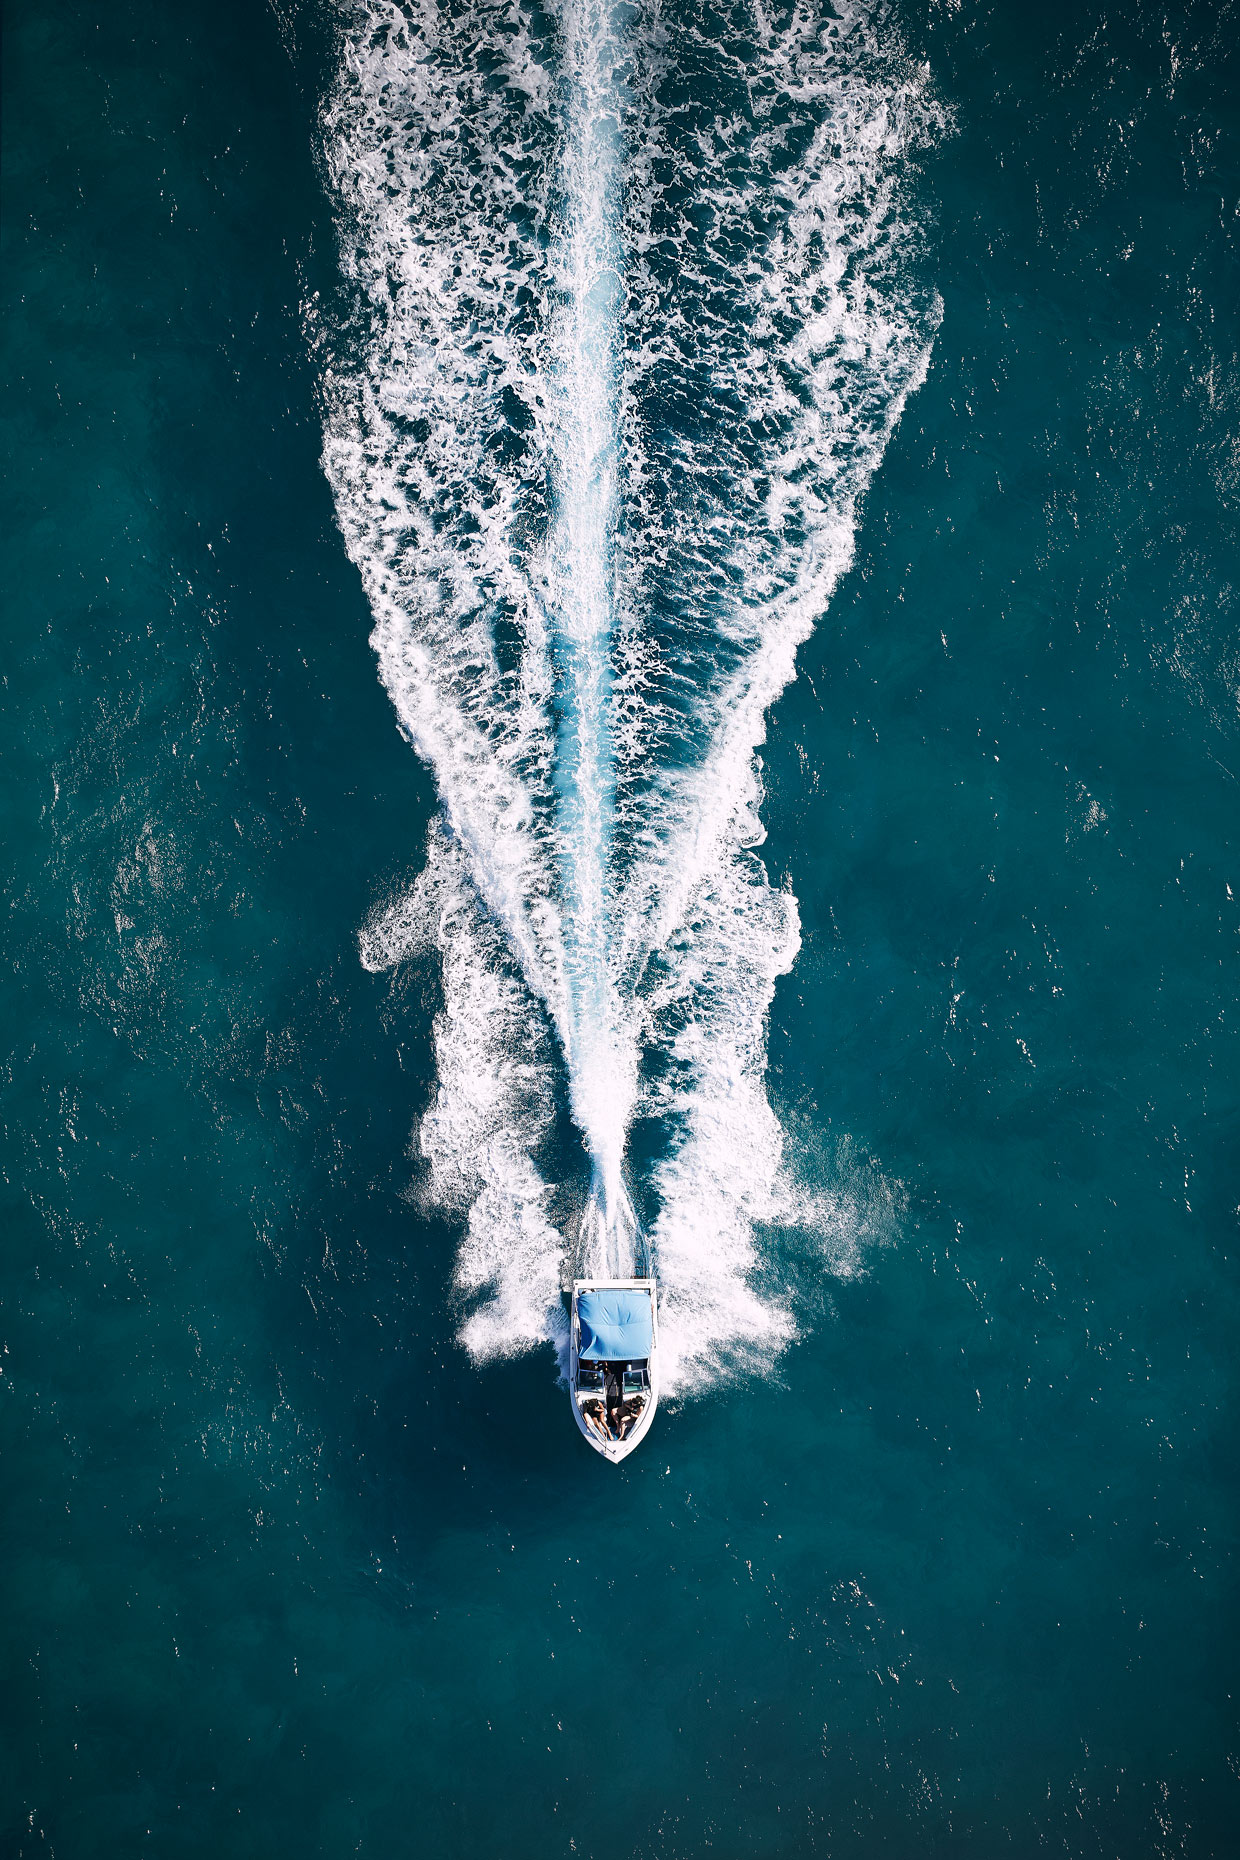 Projects Travel Photography Dominican Republic Derek Israelsen Aerial Speed Boat